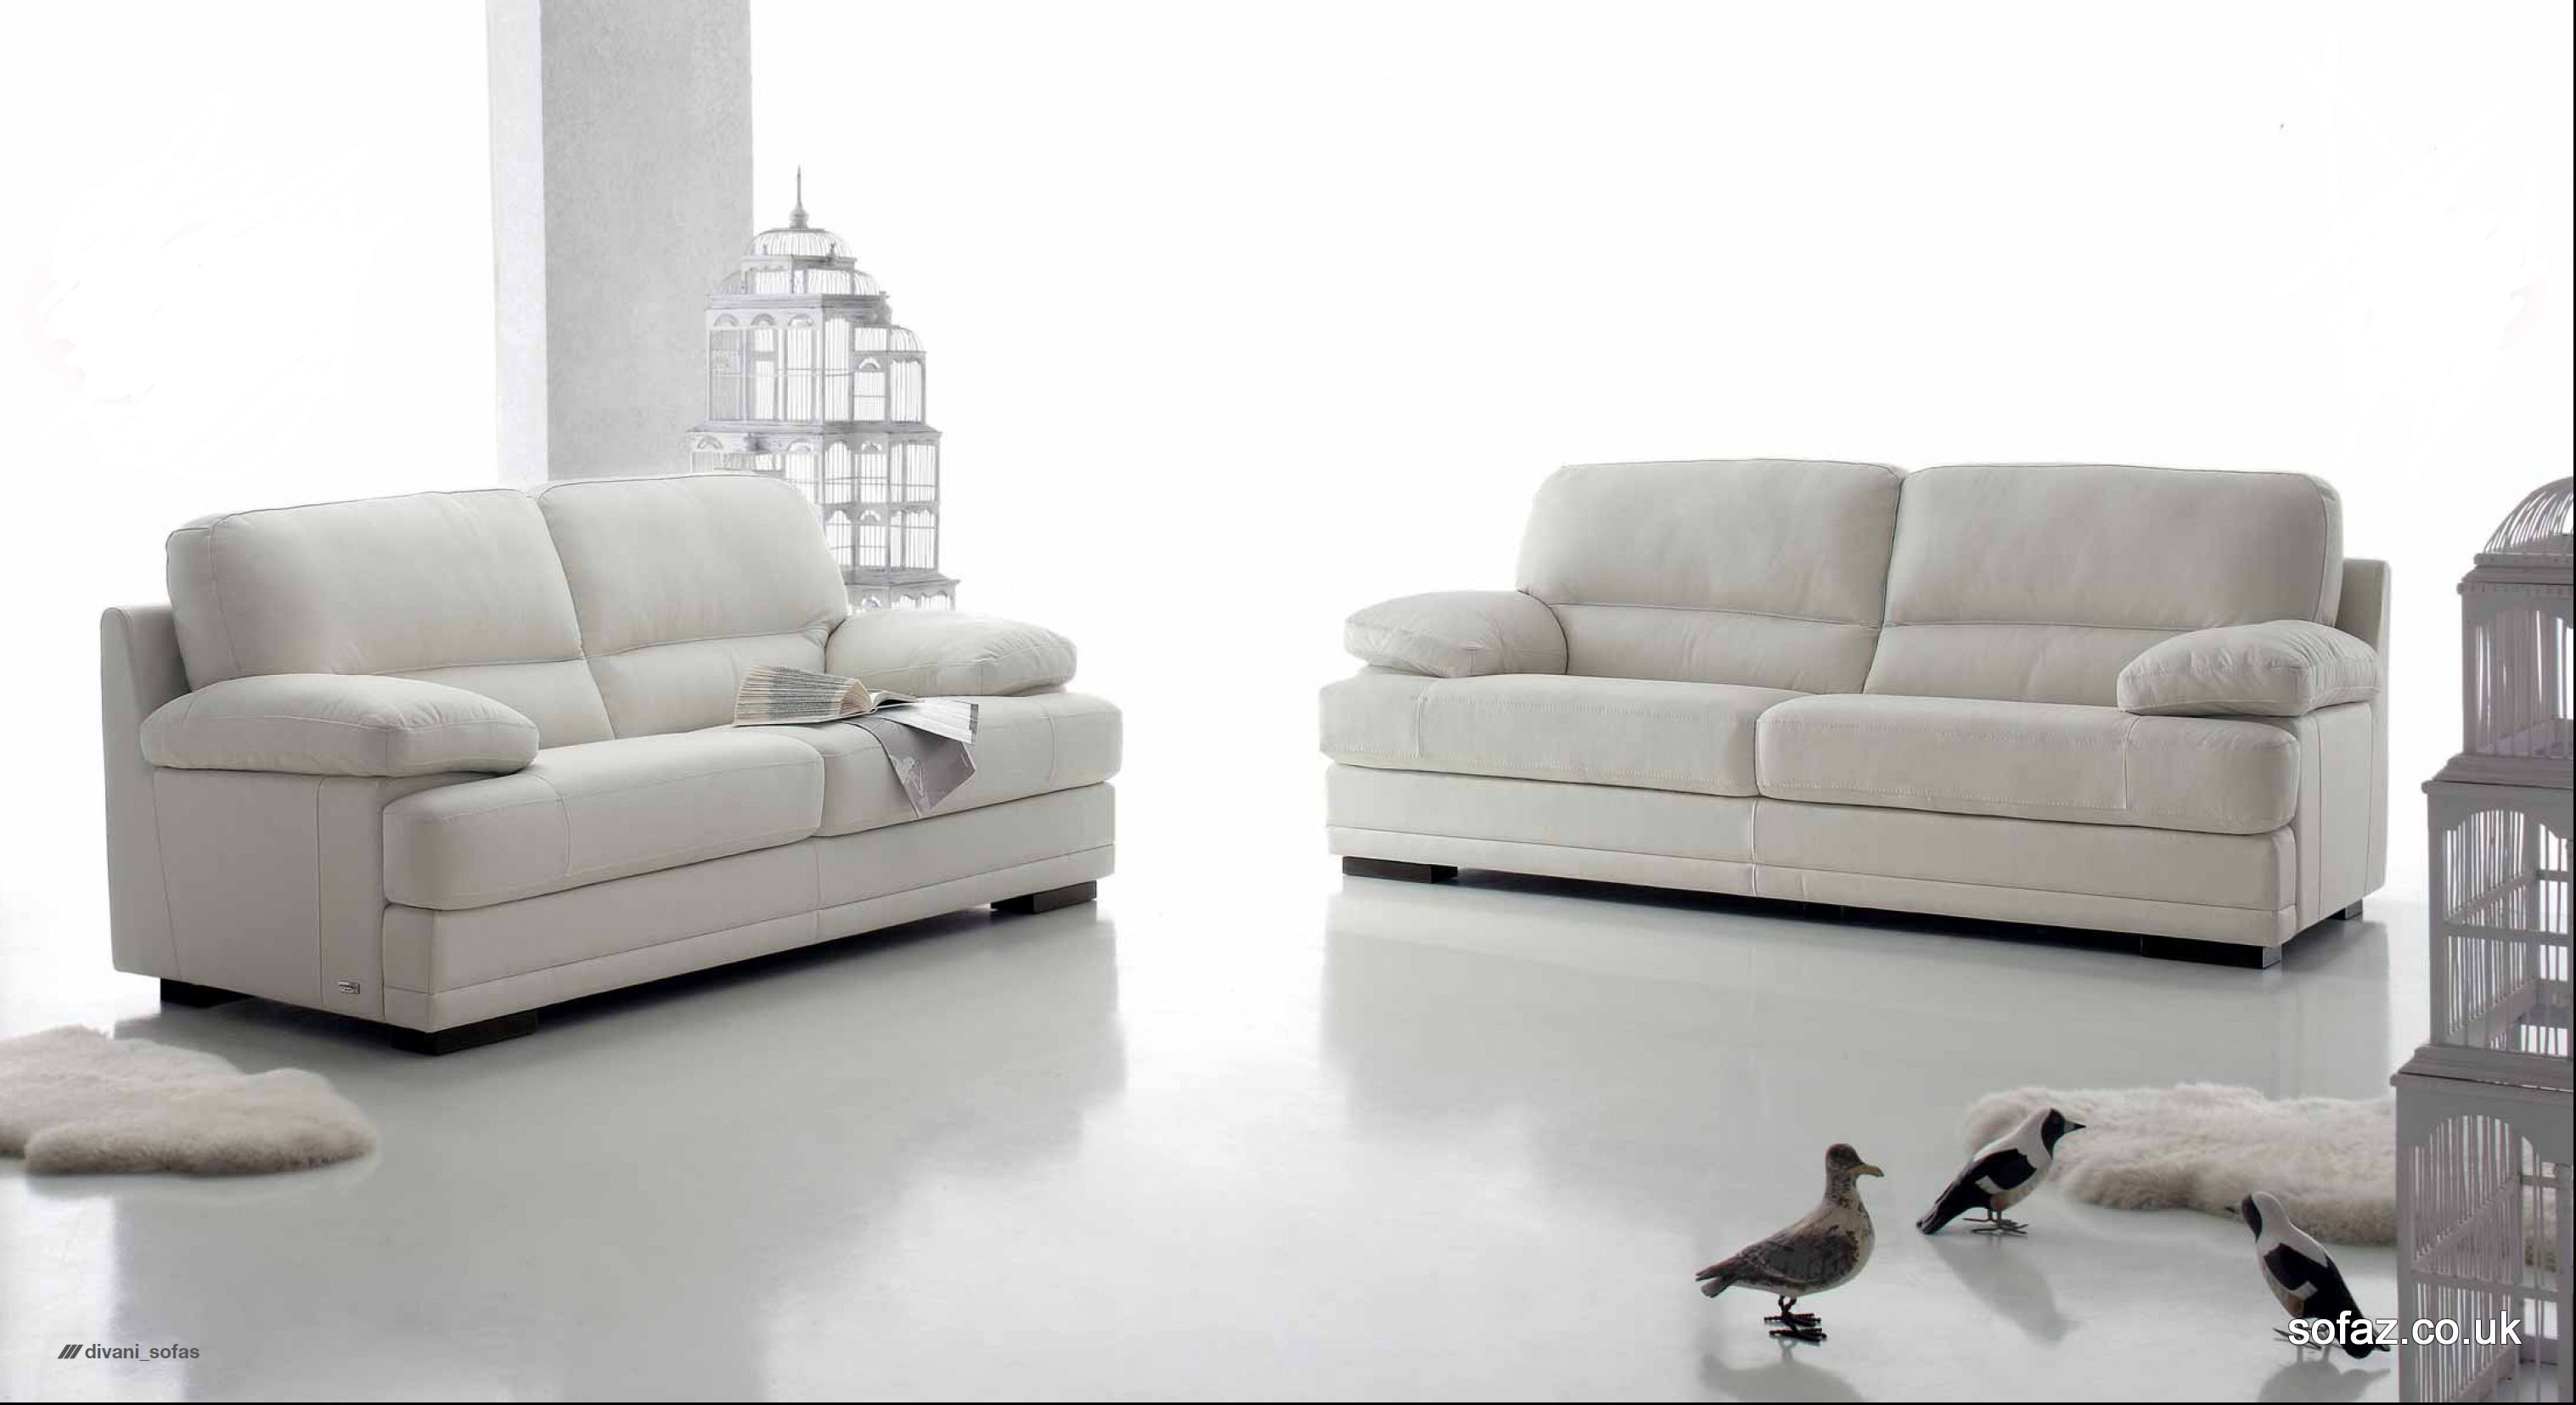 Italian Leather Sofas Uk Italian Leather Sectional Sofa Italian Leather Sofa Leather Sofa And Loveseat